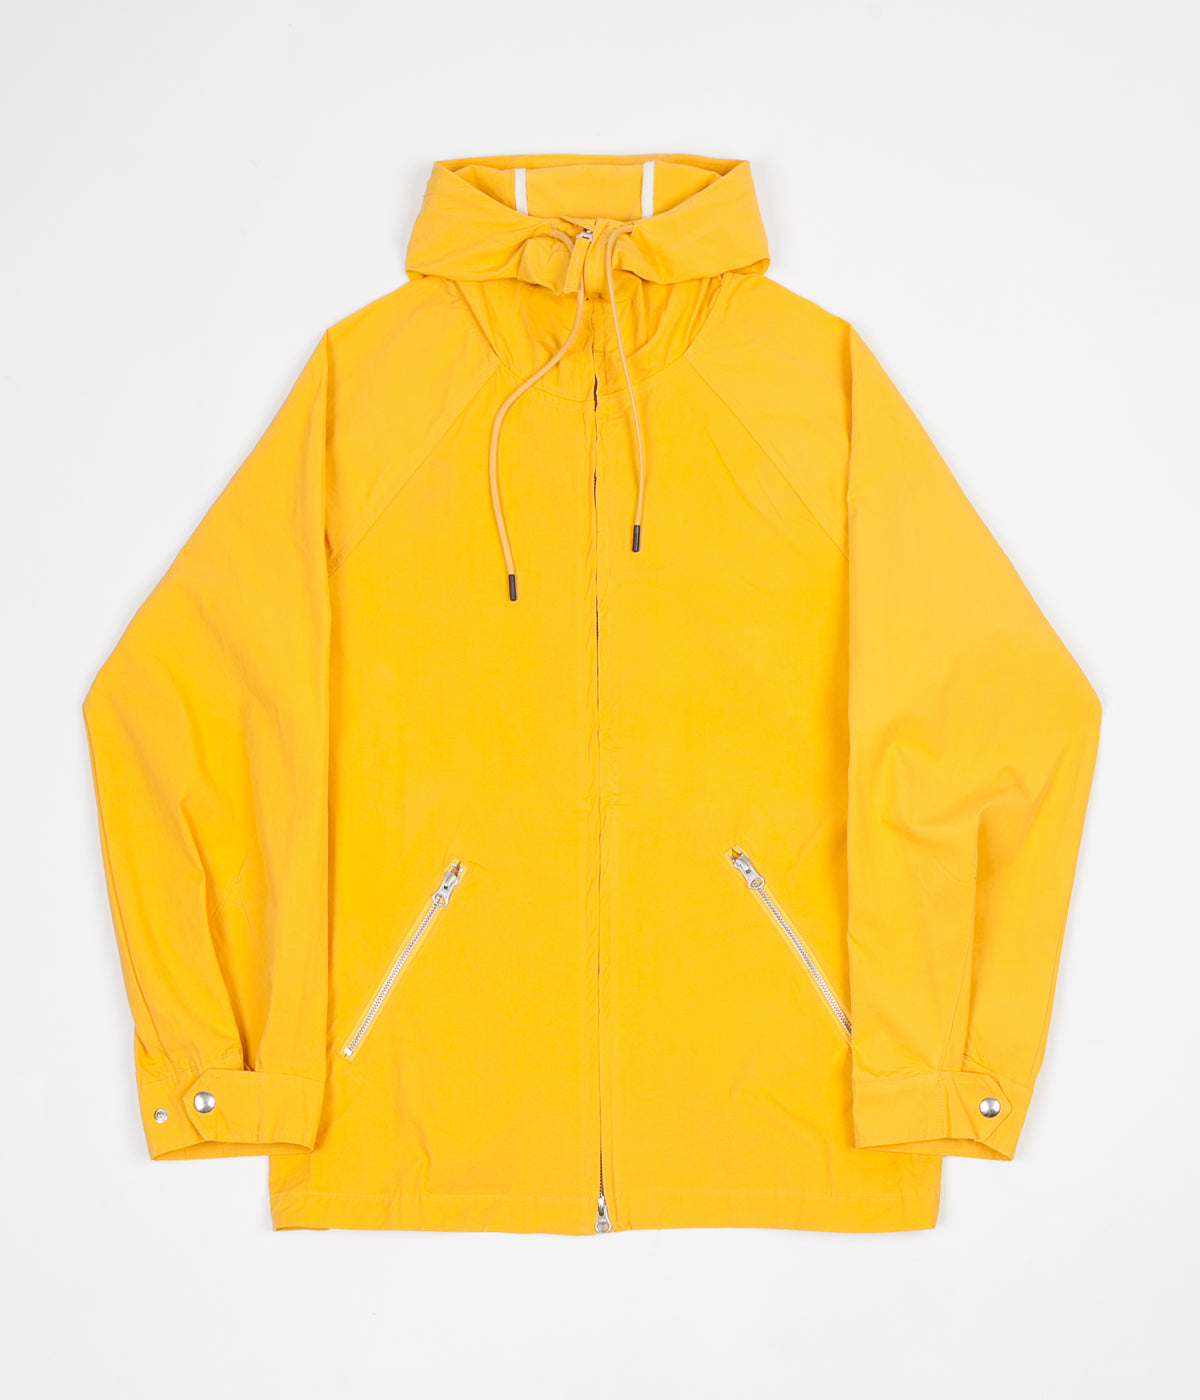 Pop Trading Company AMS Hooded Jacket - Burnt Yellow